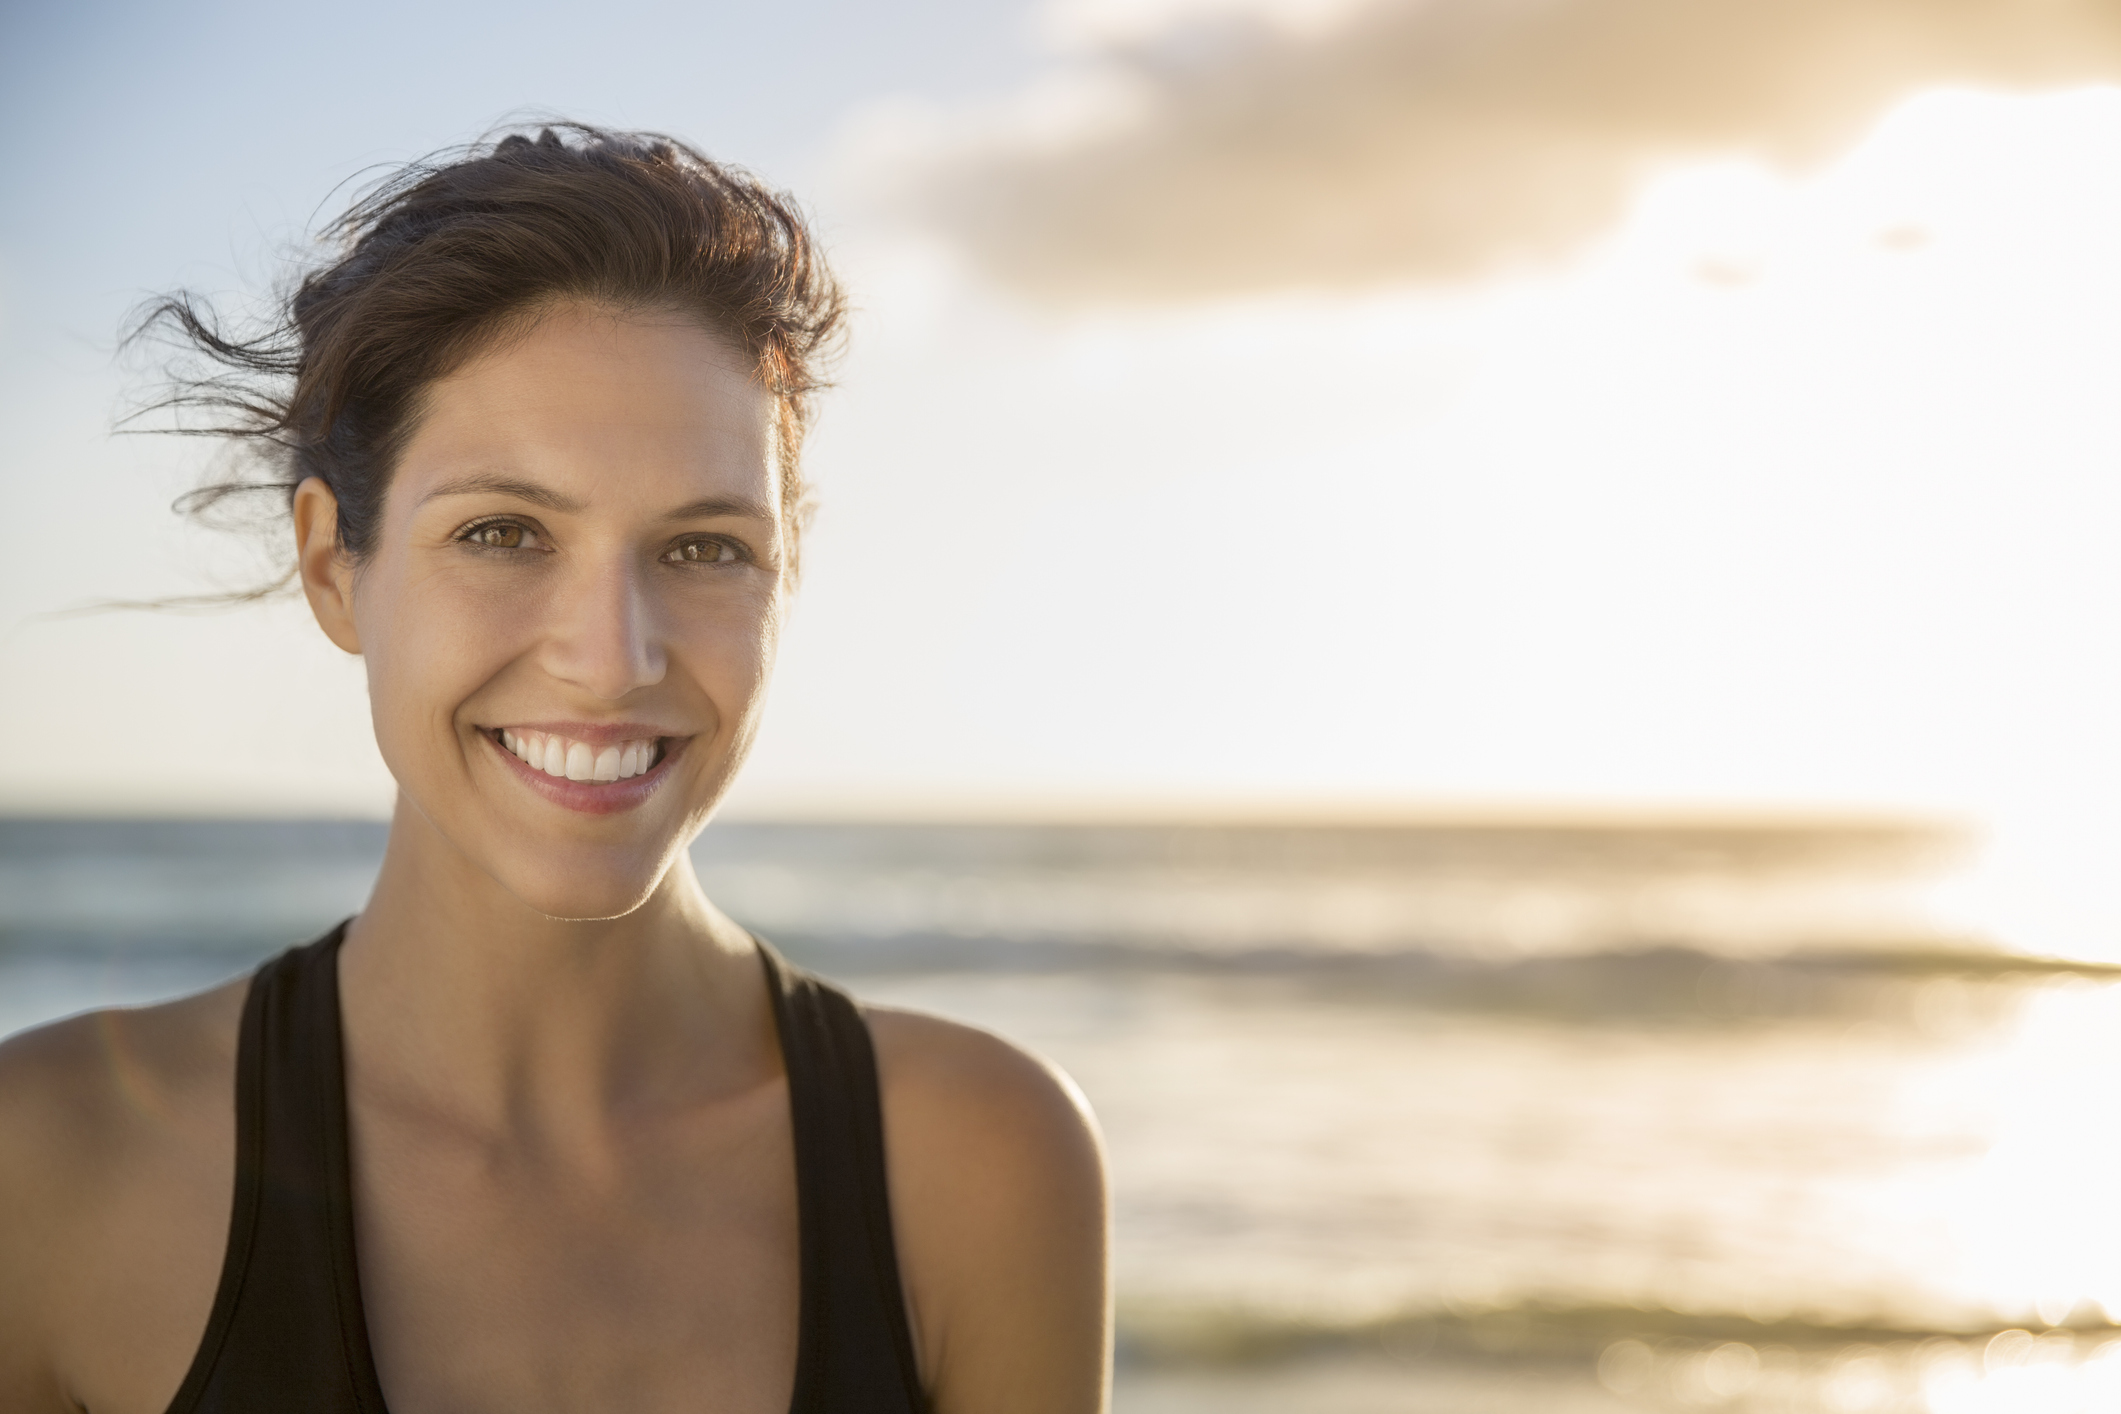 Portrait of happy female athlete at beach. Confident young woman is against sky during sunset. She is sportswear.